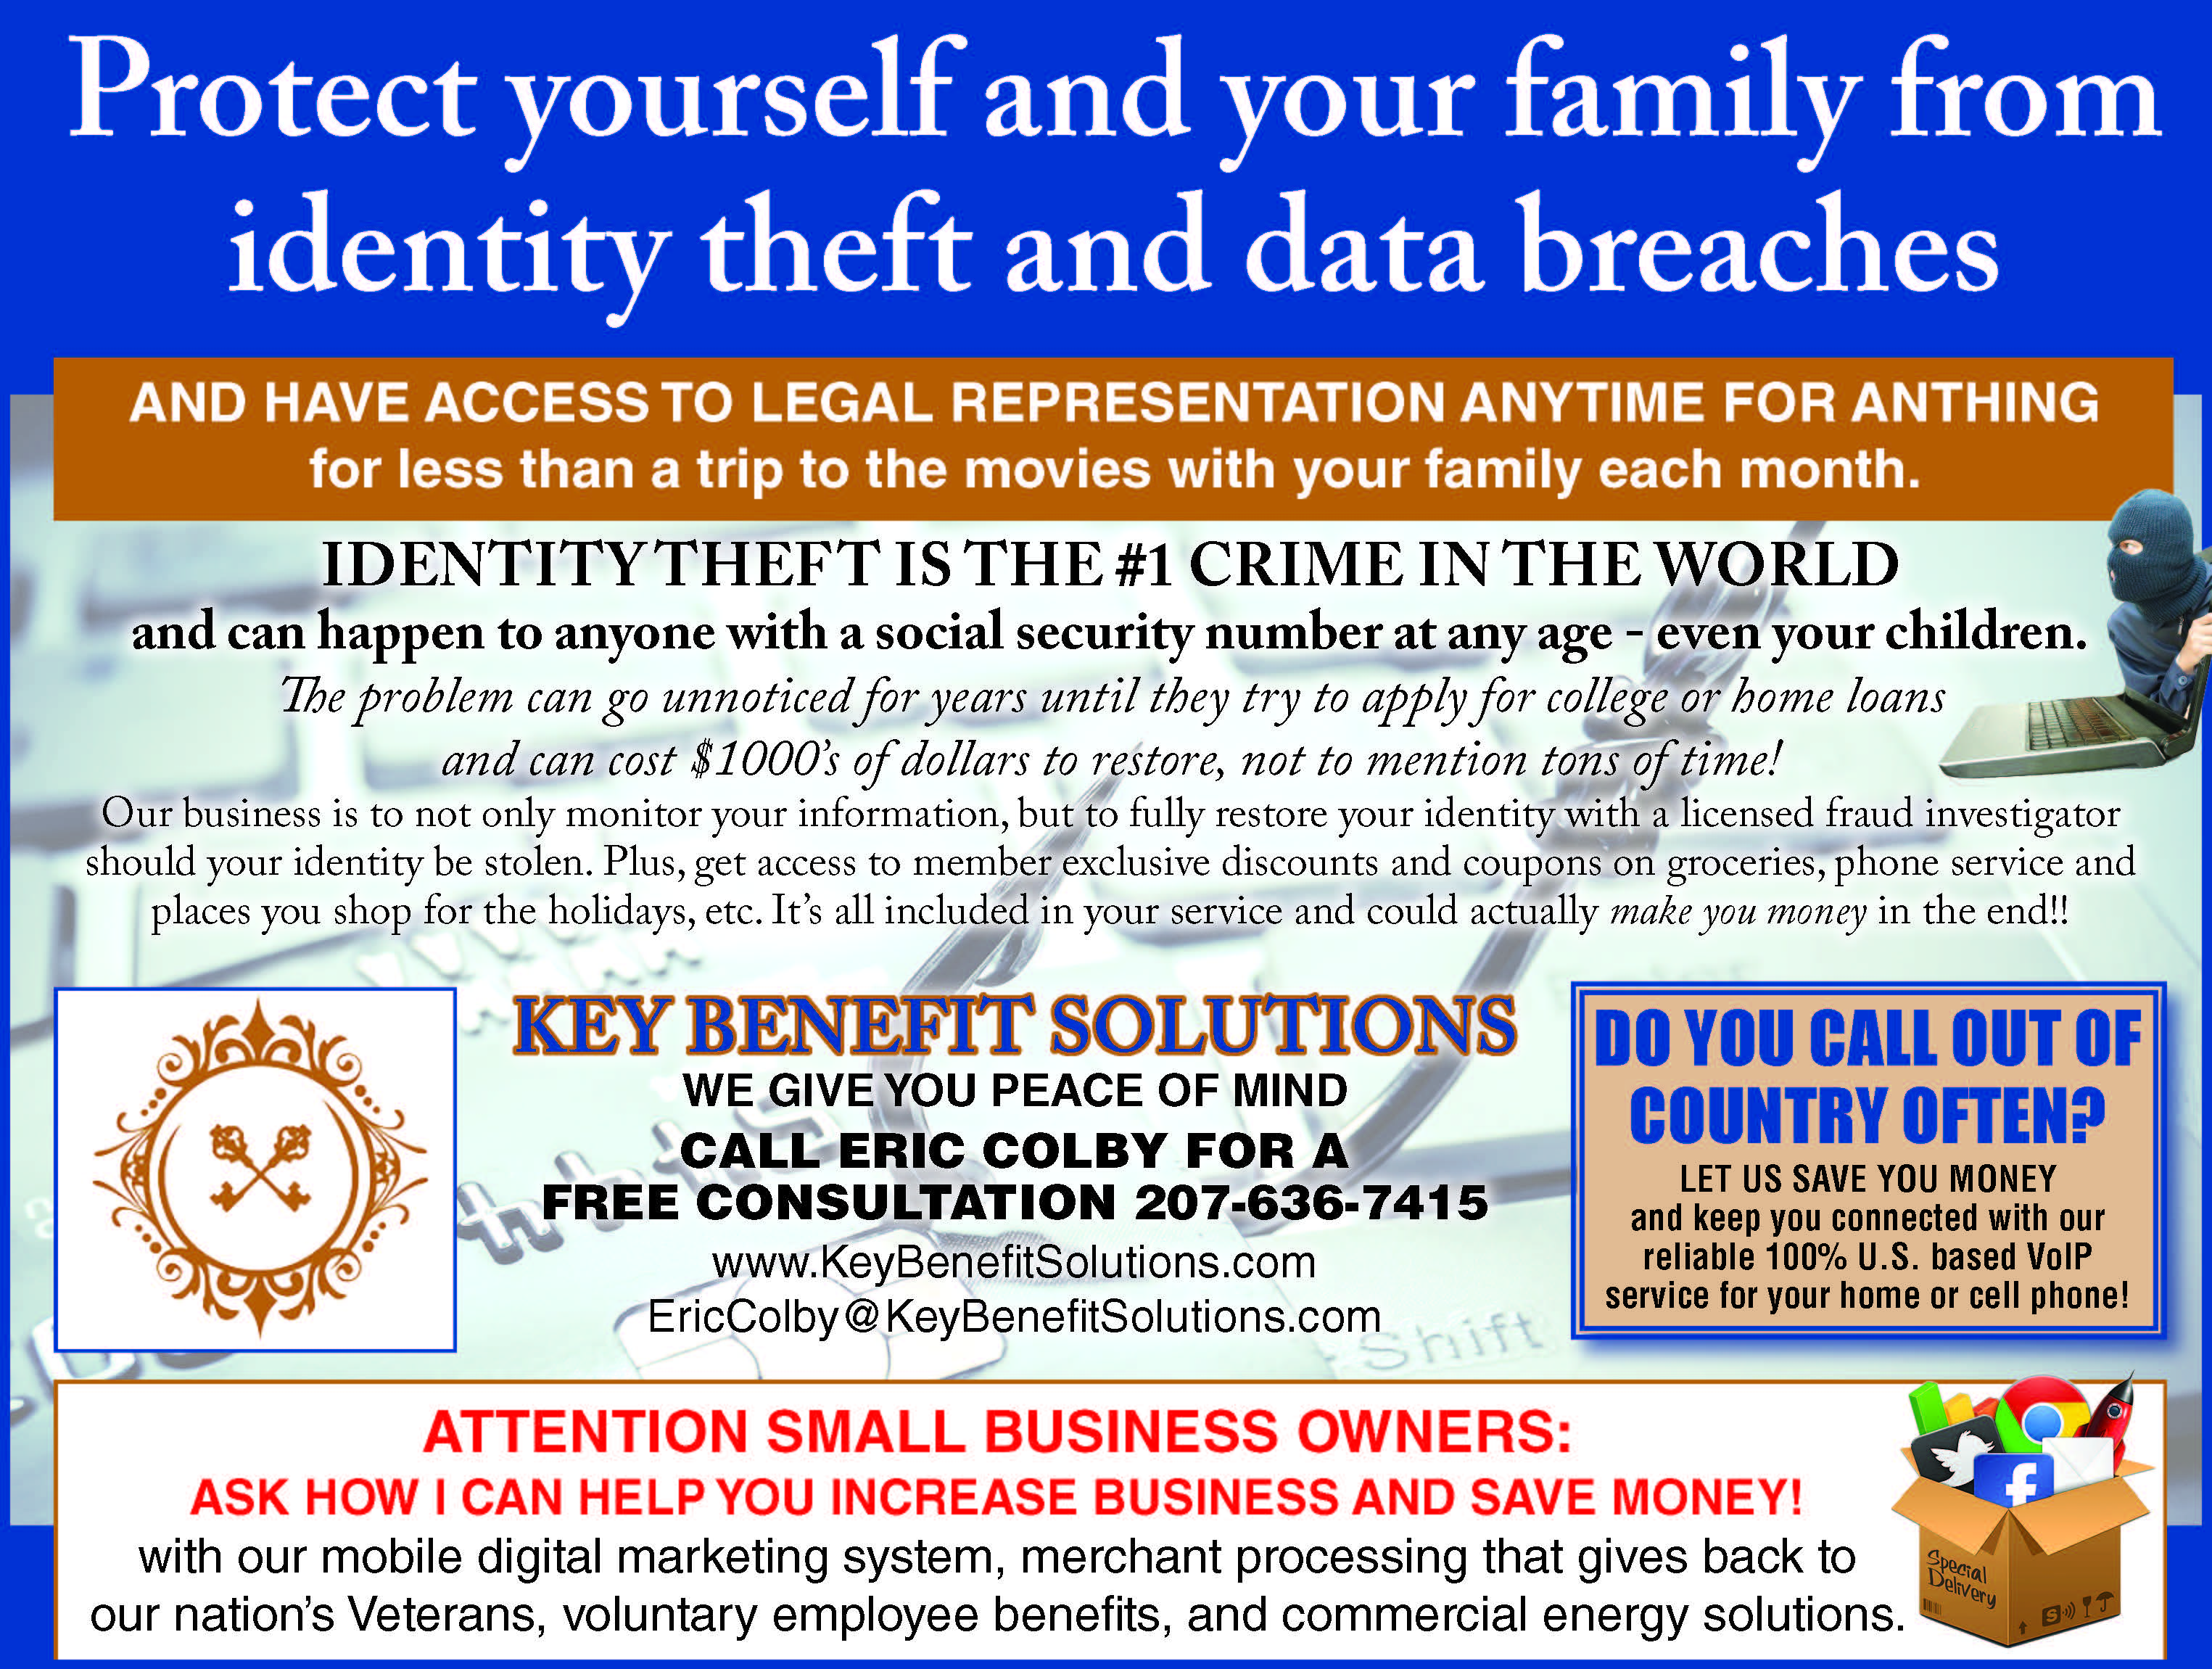 https://www.keybenefitsolutions.com/